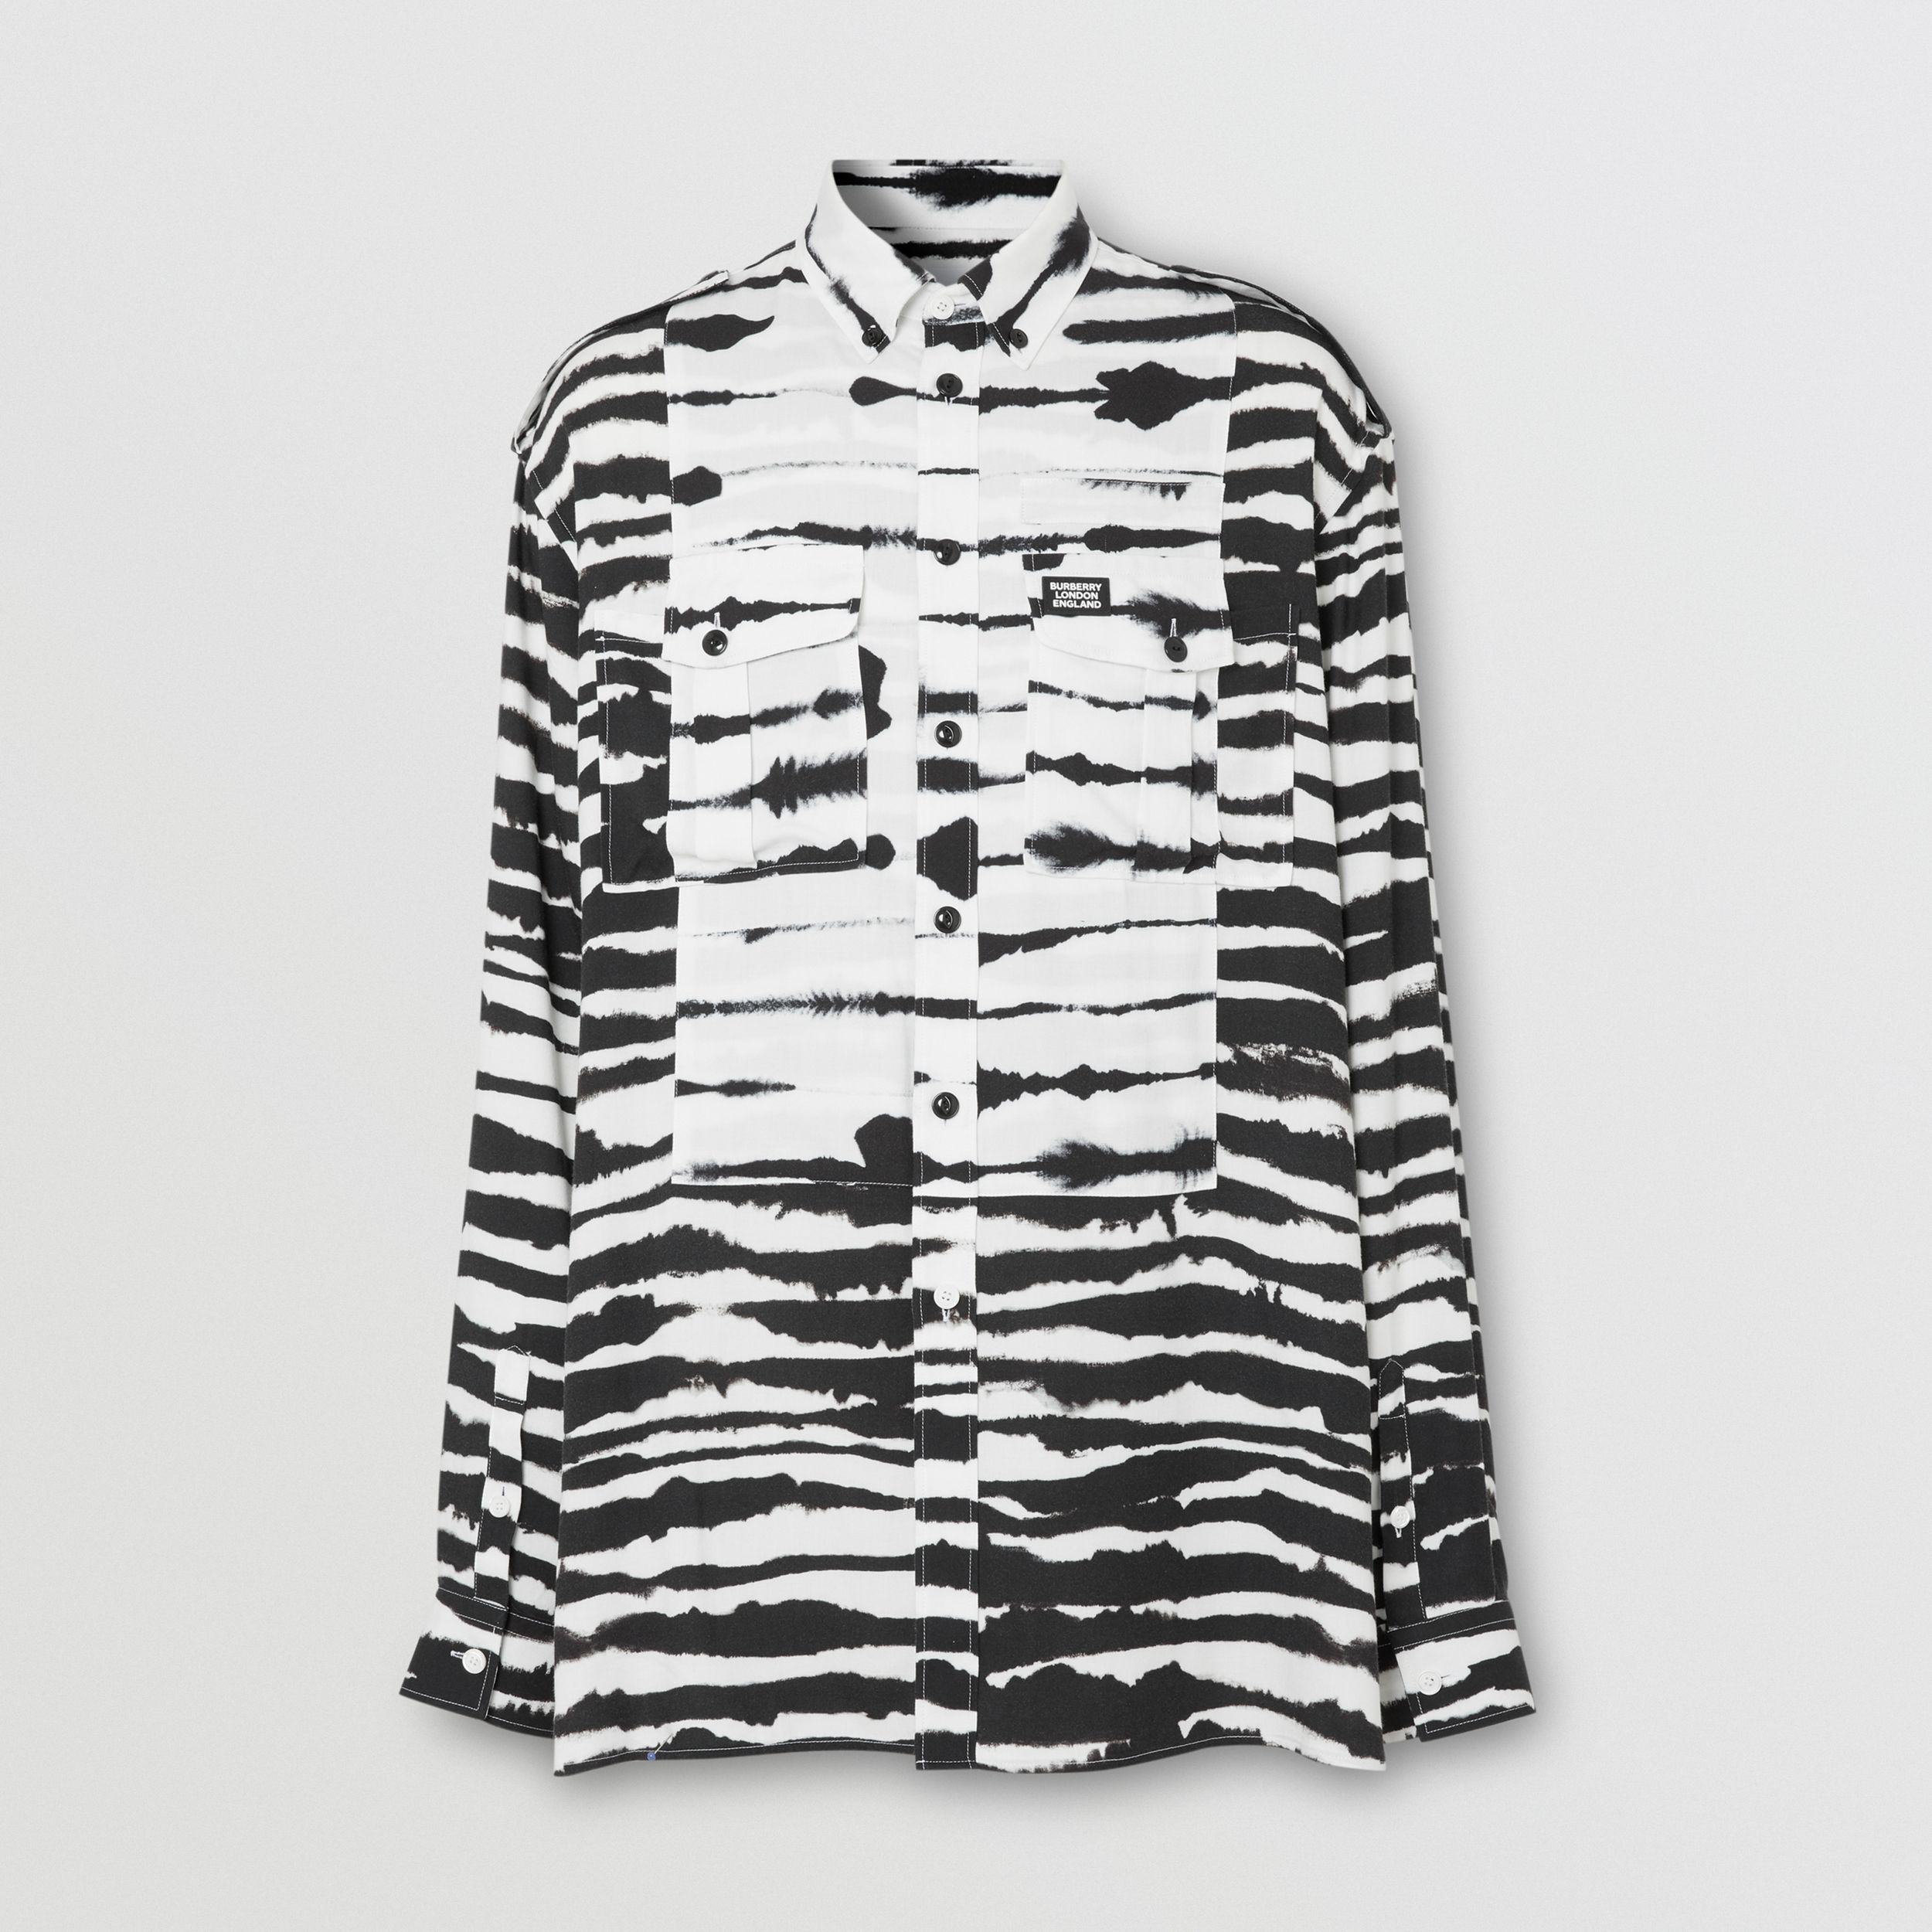 Contrast Bib Watercolour Print Twill Oversized Shirt in Monochrome - Men | Burberry - 4